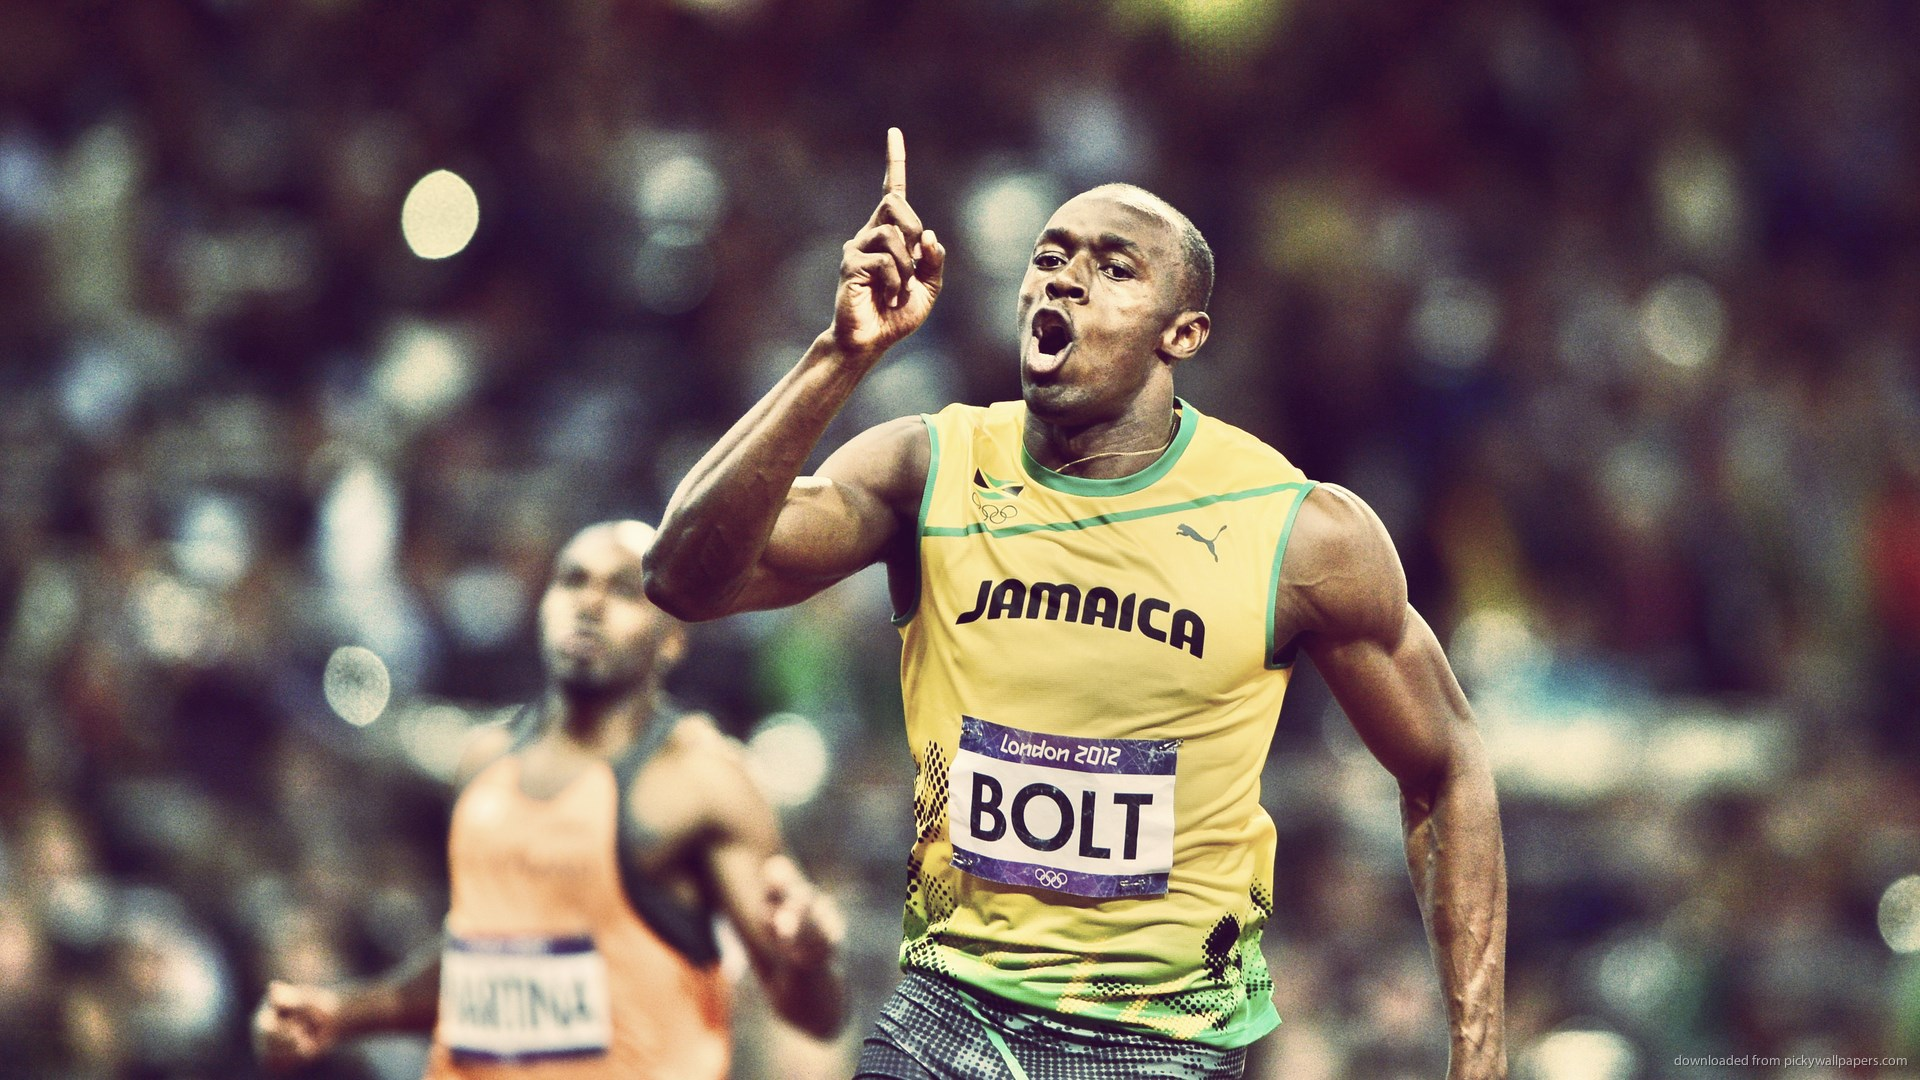 Angelica-London-widescreen-usain-bolt-1920x1080-px-wallpaper-wp3802388